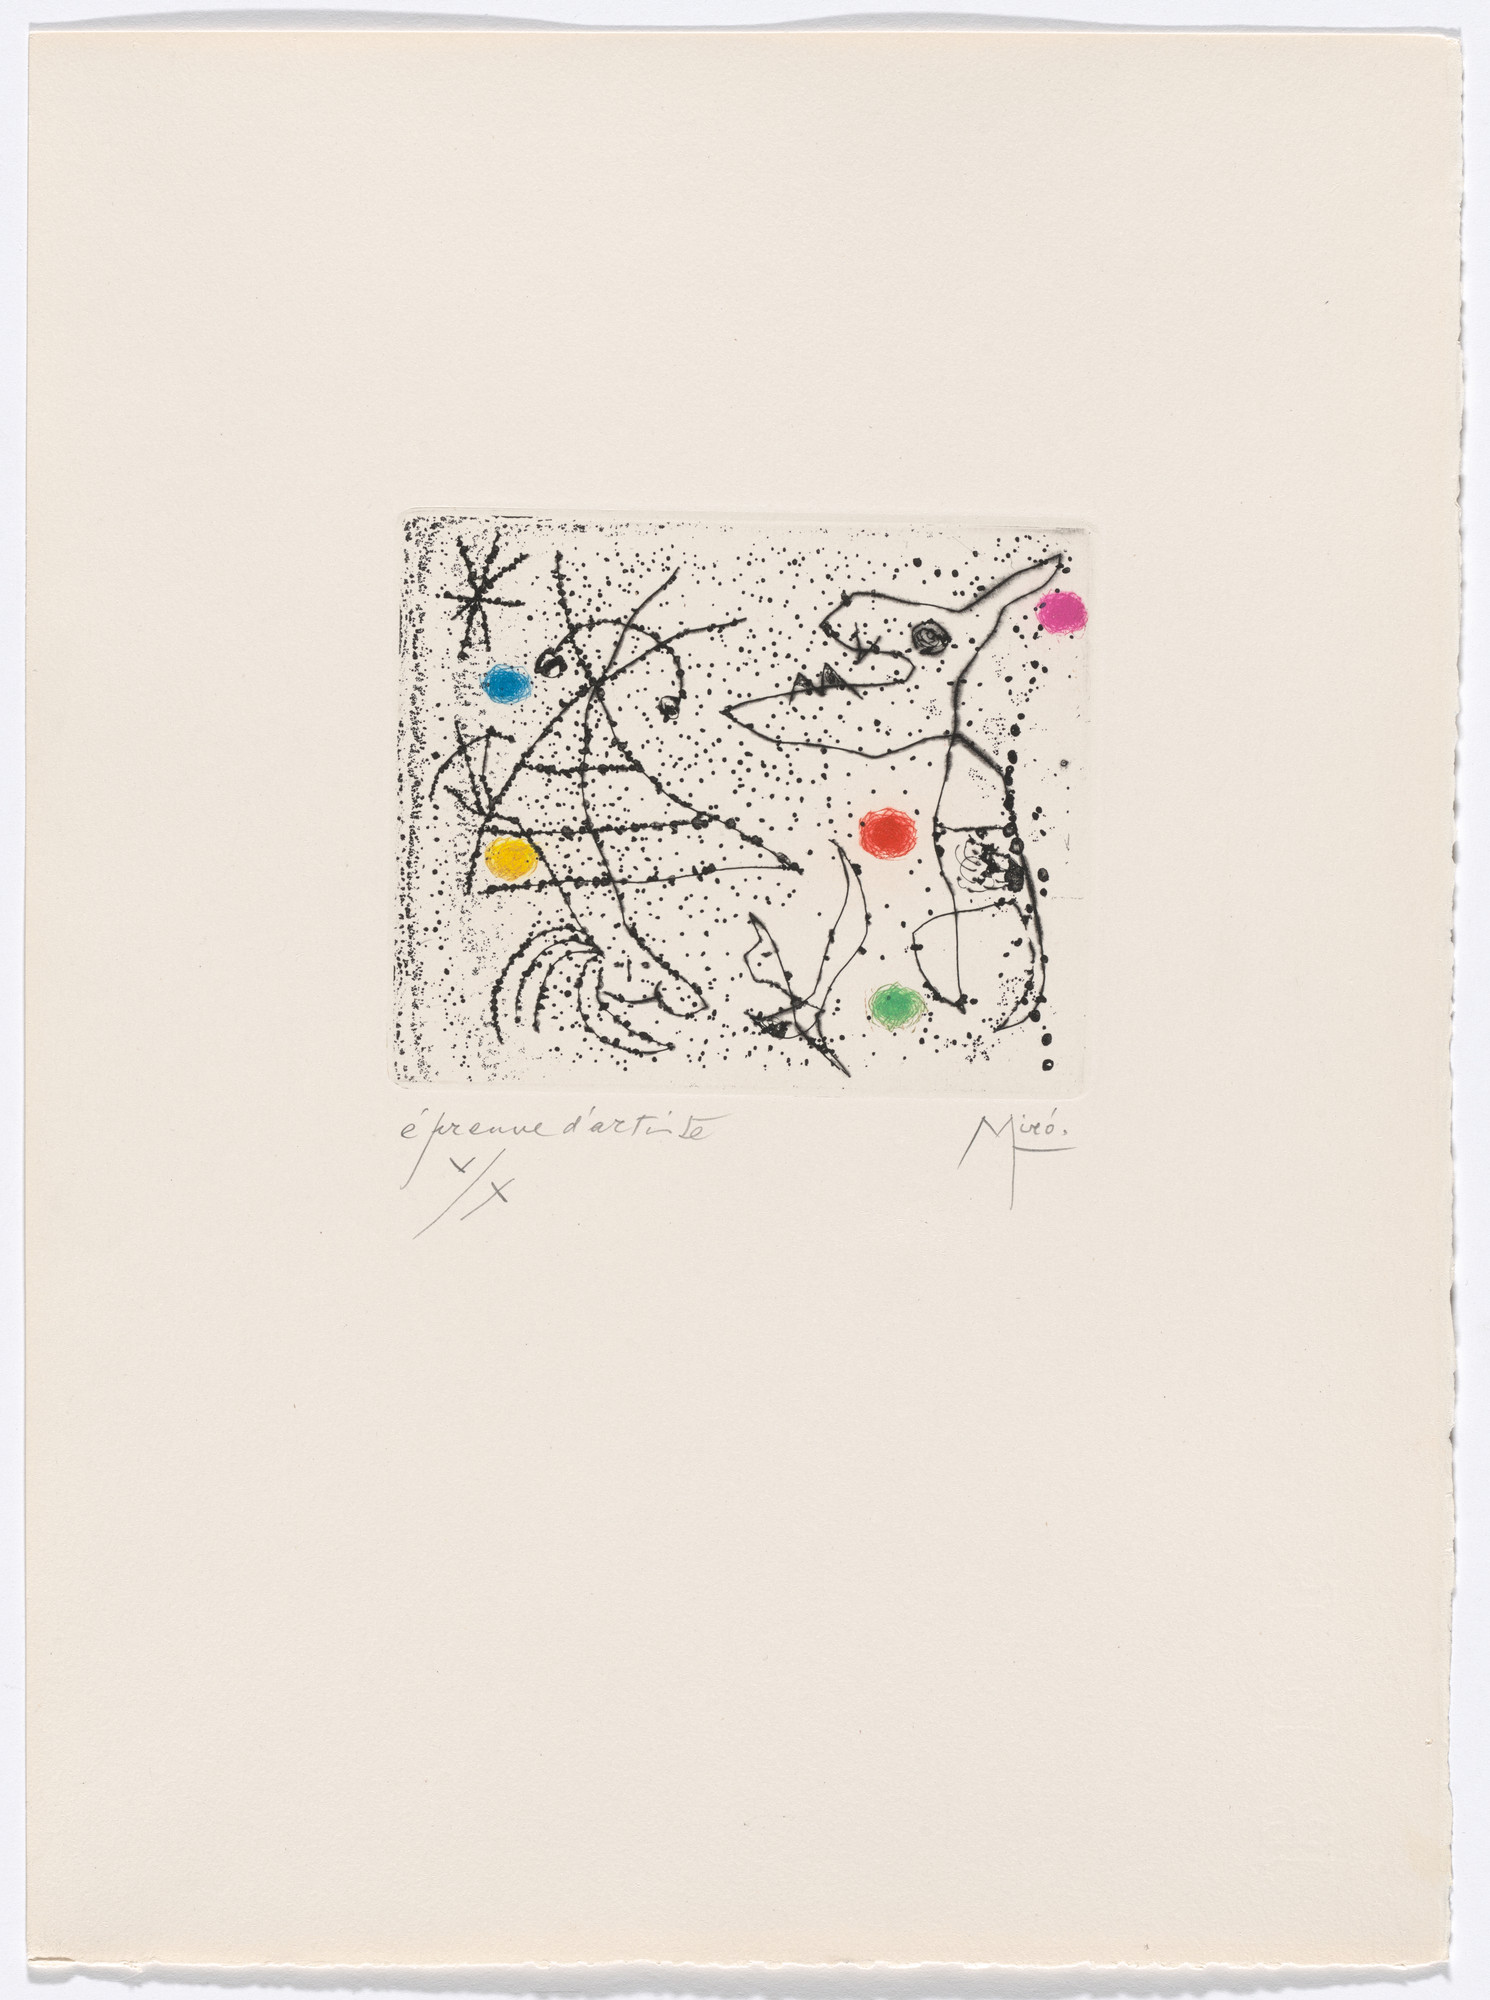 Joan Miró. Plate XXII from The Ring of Dawn Suite (Suite la bague d'aurore). 1957